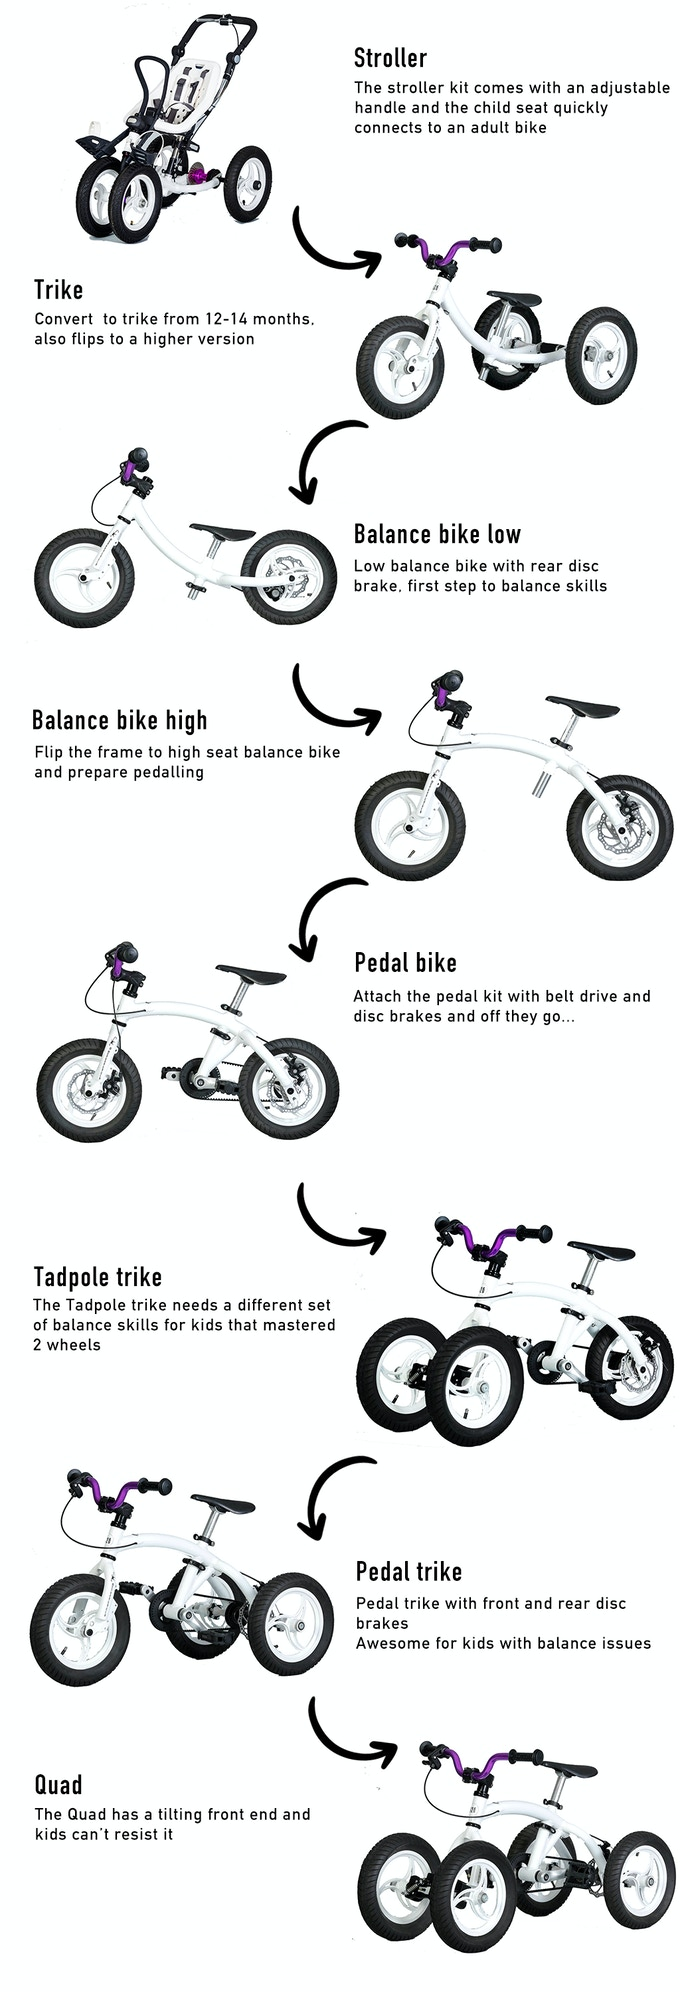 Monkeycycle: The 8-in-1 Bike That Grows With Your Child by